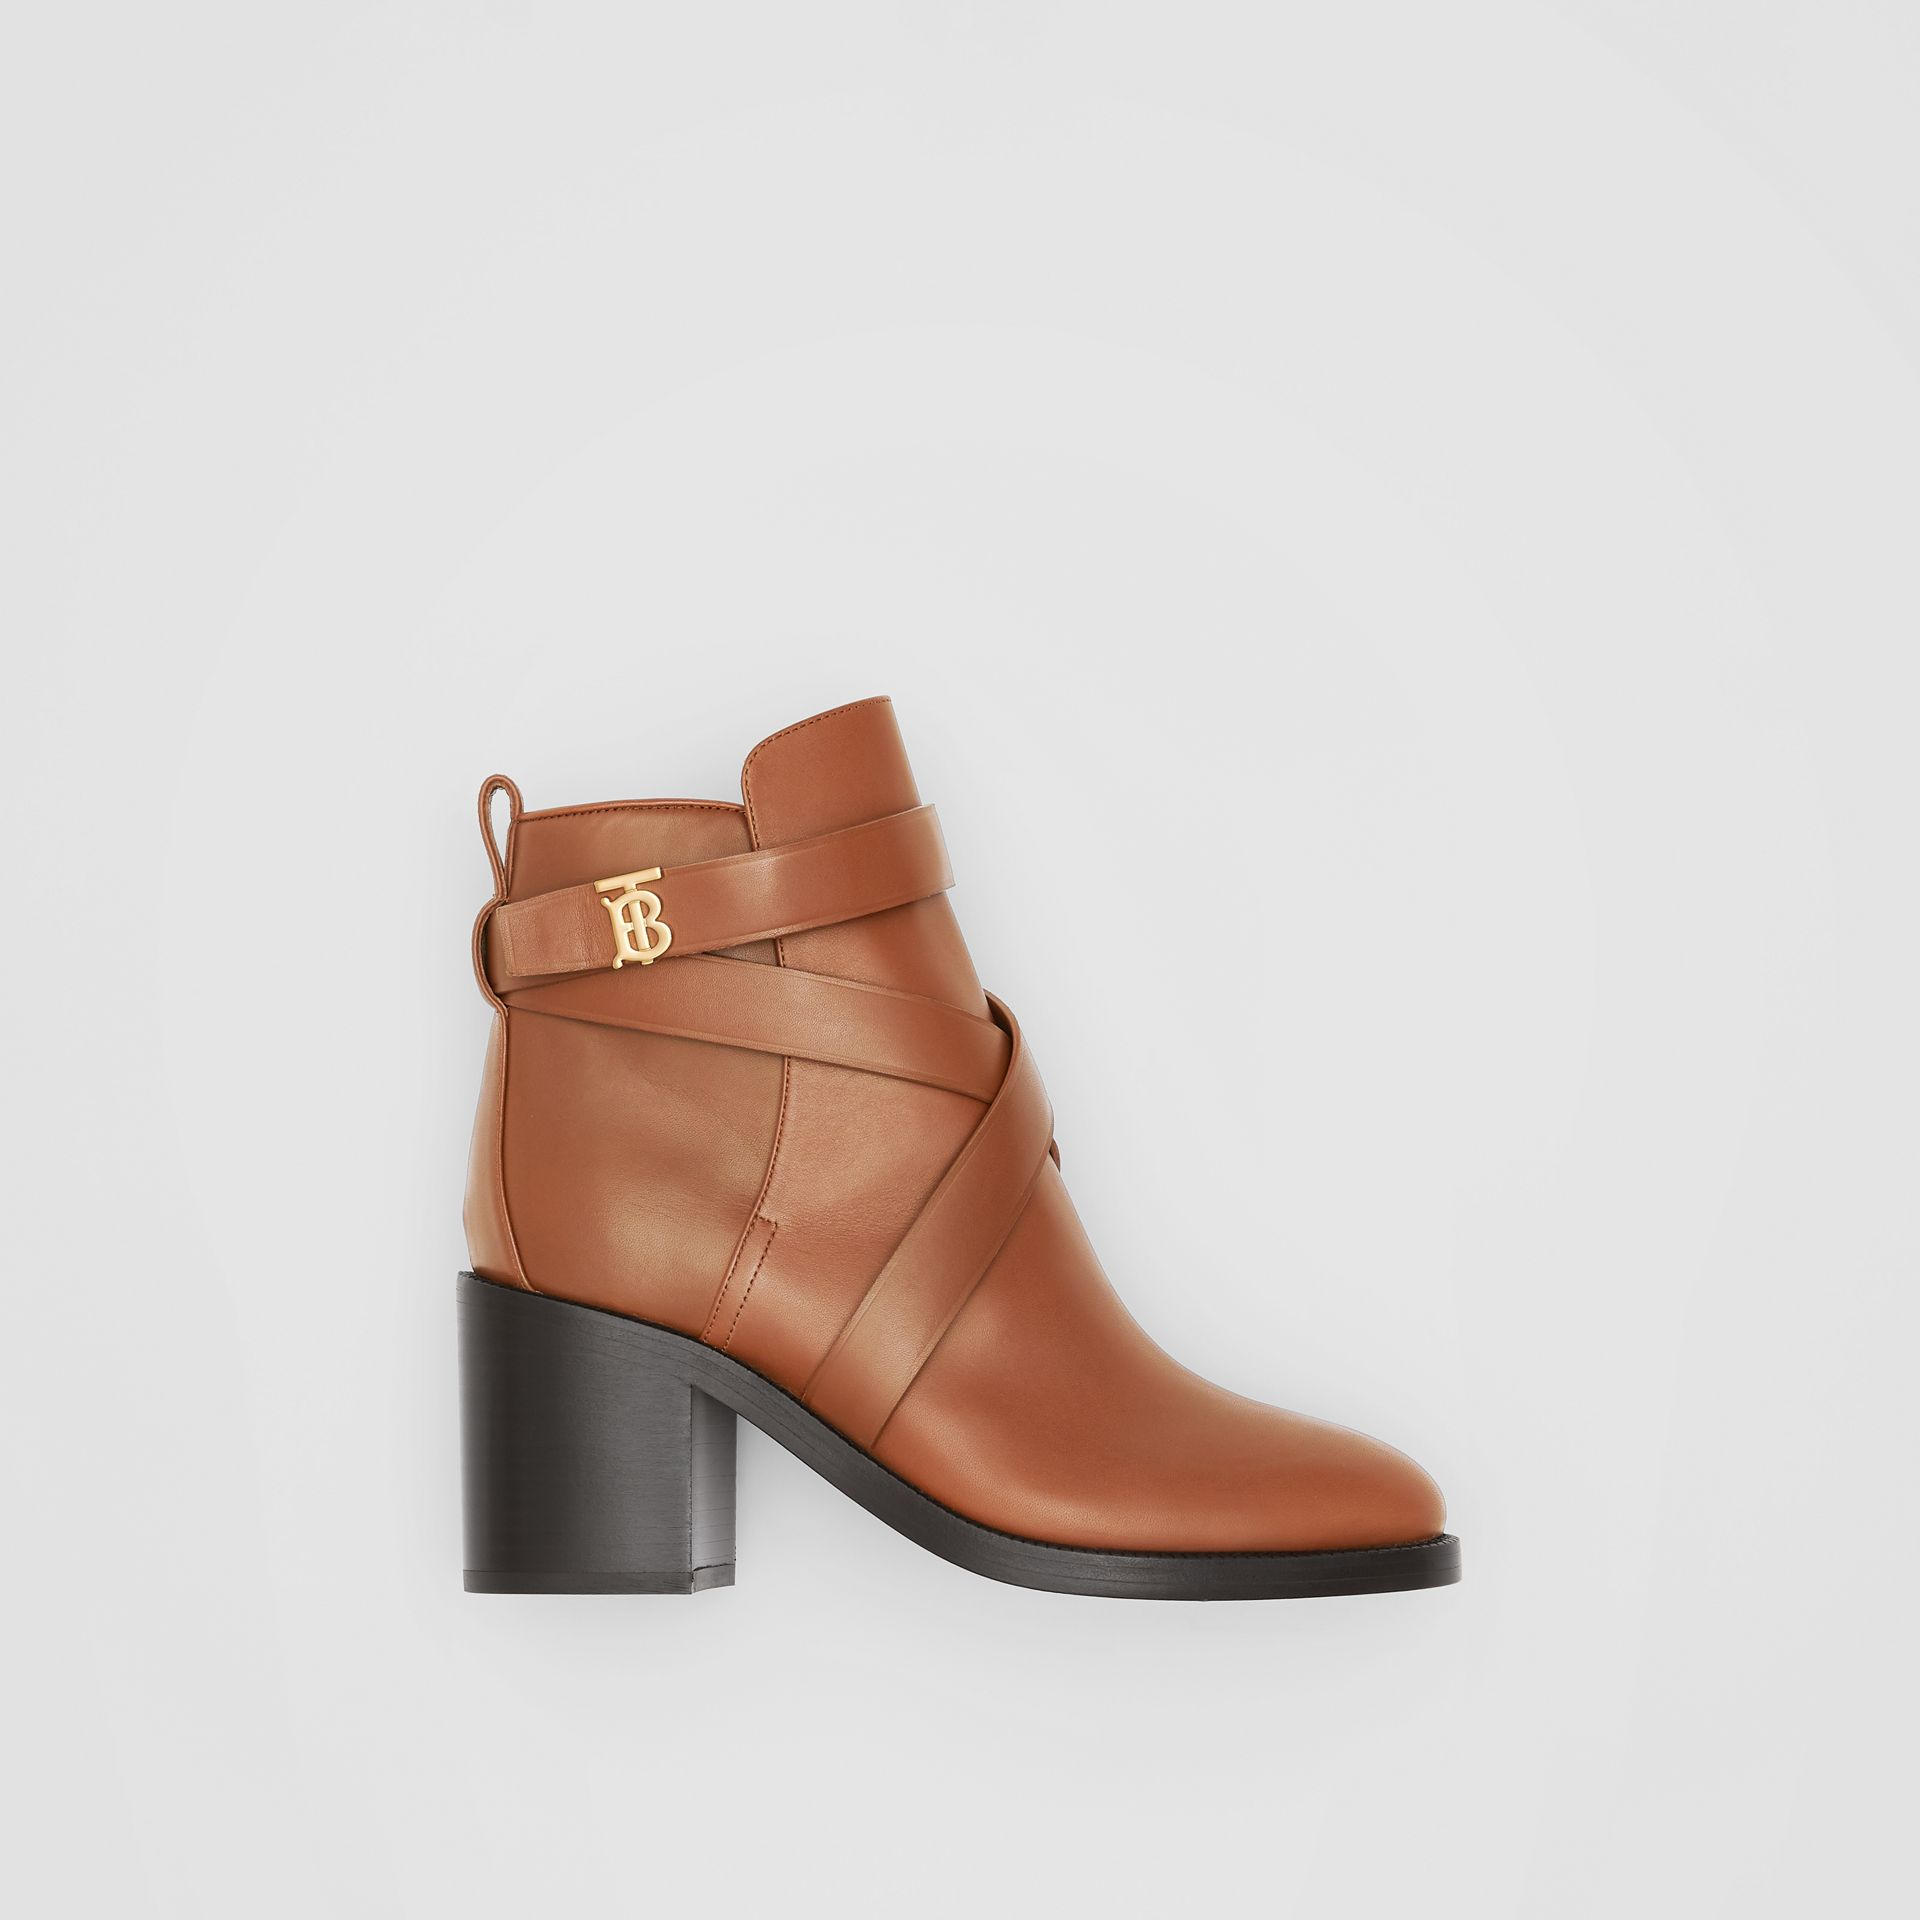 Monogram Motif Leather Ankle Boots in Tan - Women | Burberry Canada - gallery image 0